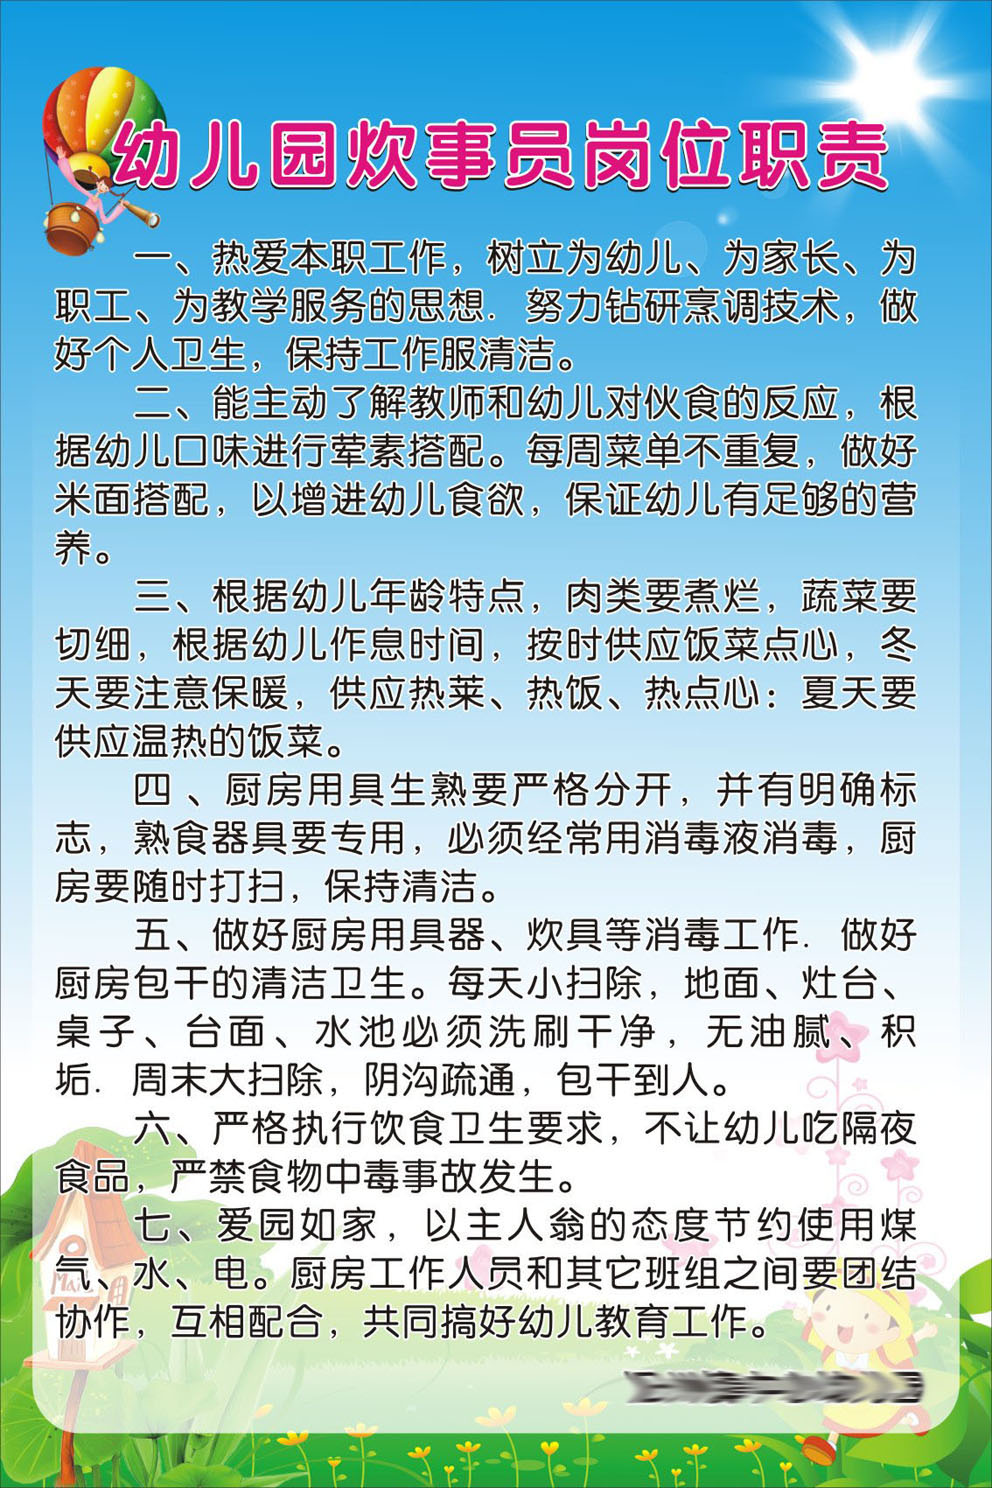 730 posters printed photo printing 418 2 kindergarten school canteen licensing system responsibilities as cooks